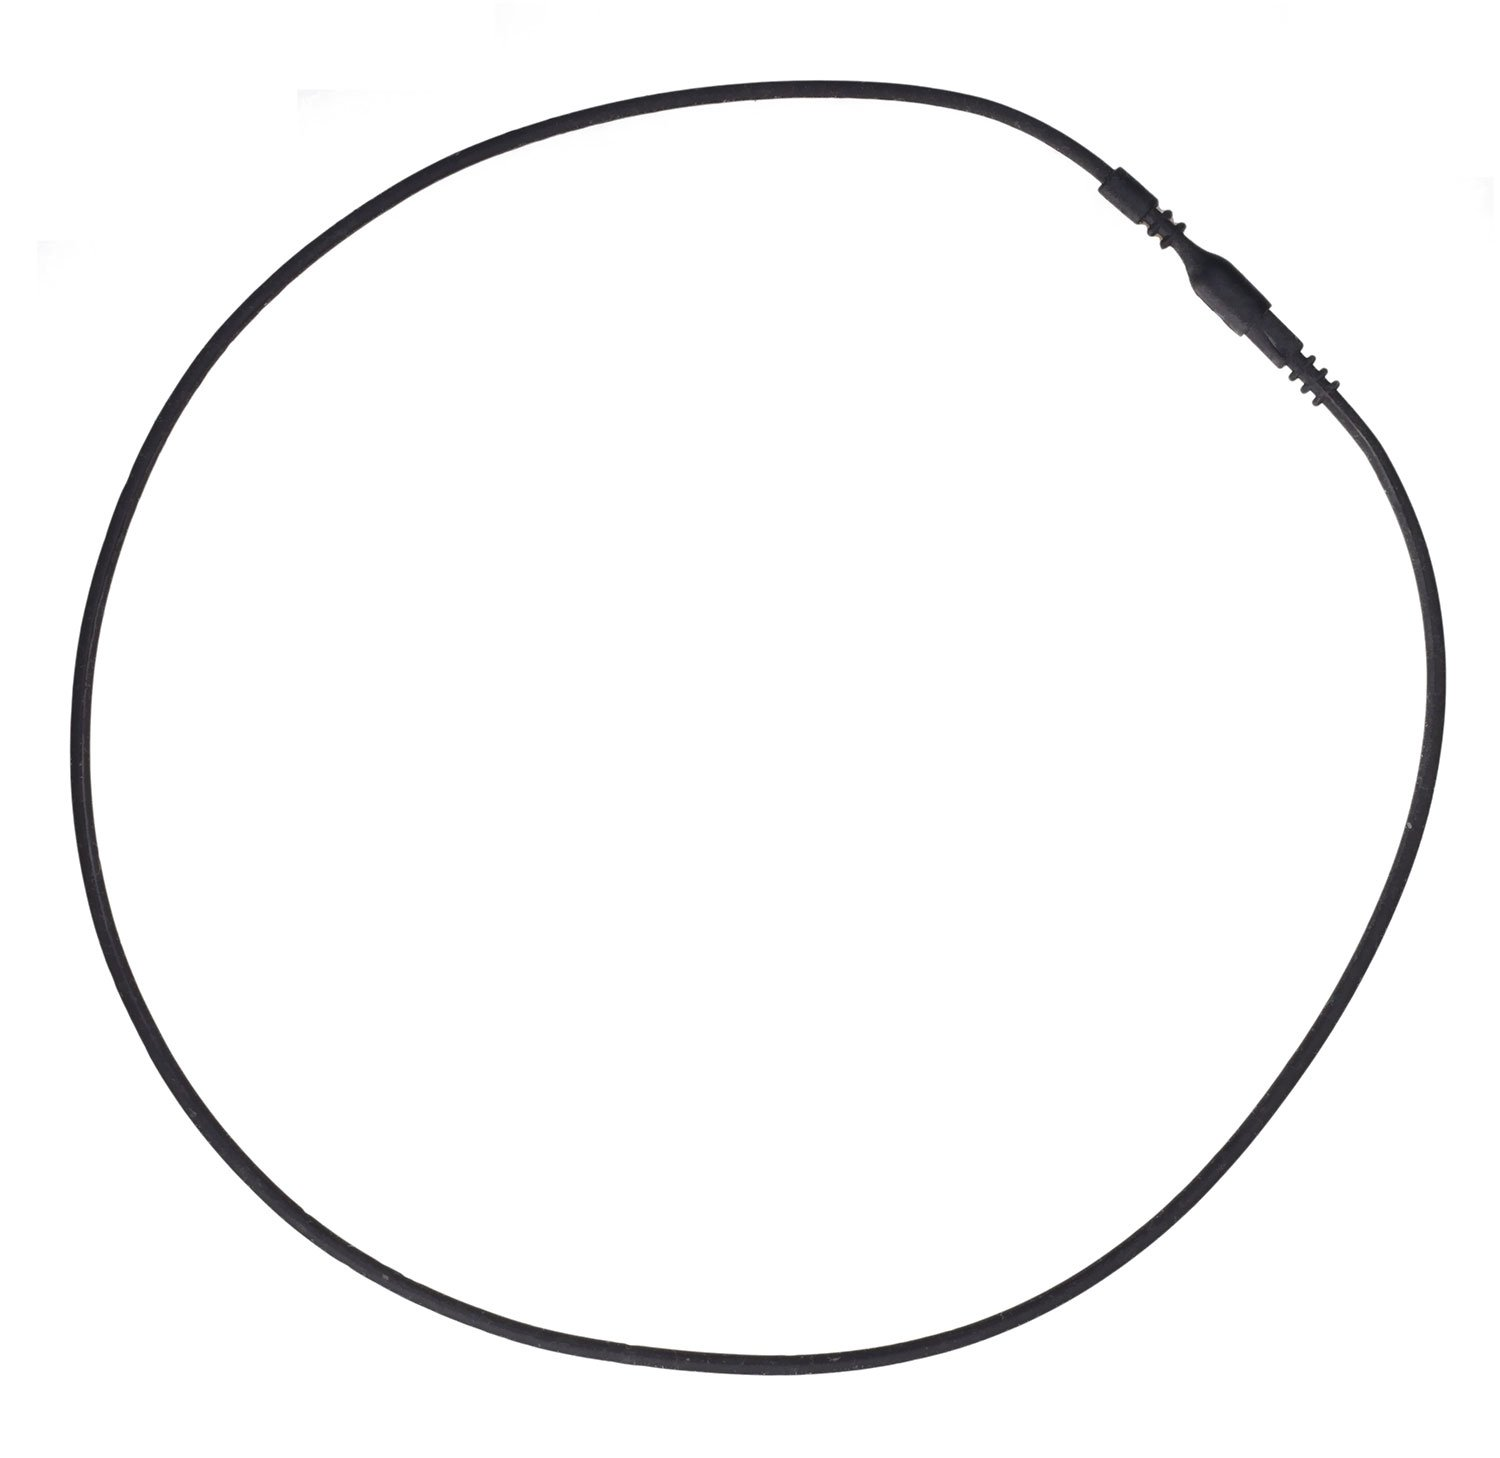 uGems 10 18-inch Black Silicone Rubber Tubing Cord Necklaces with Locking Clasp 2mm by uGems